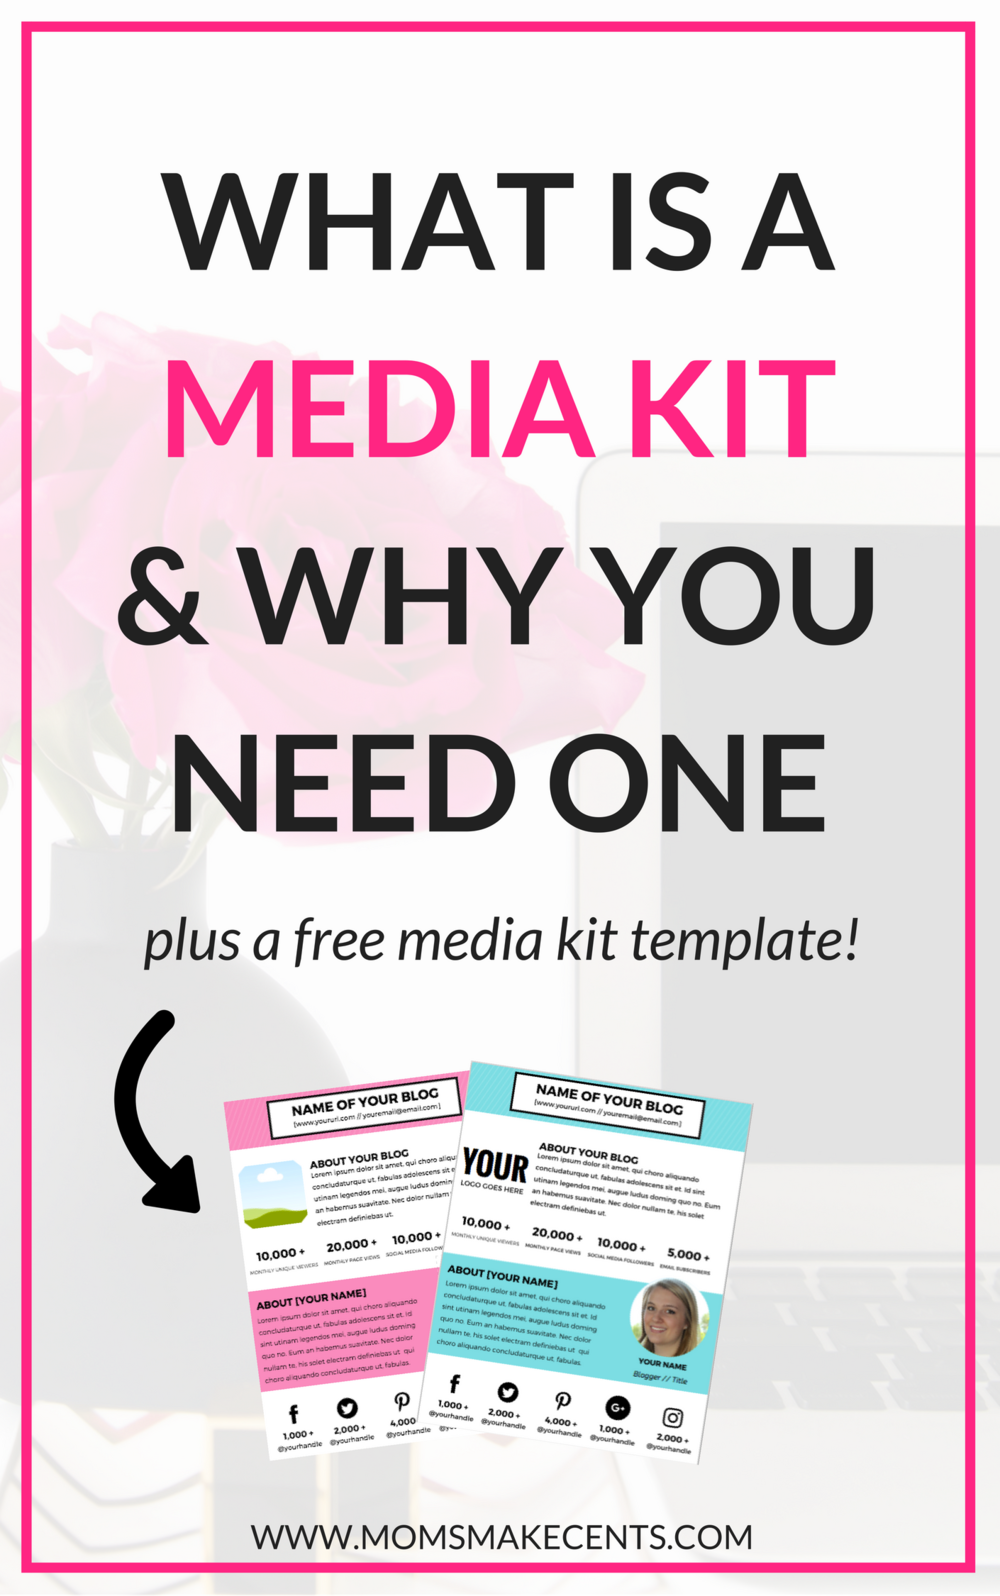 What Is A Media Kit & Why You Need One